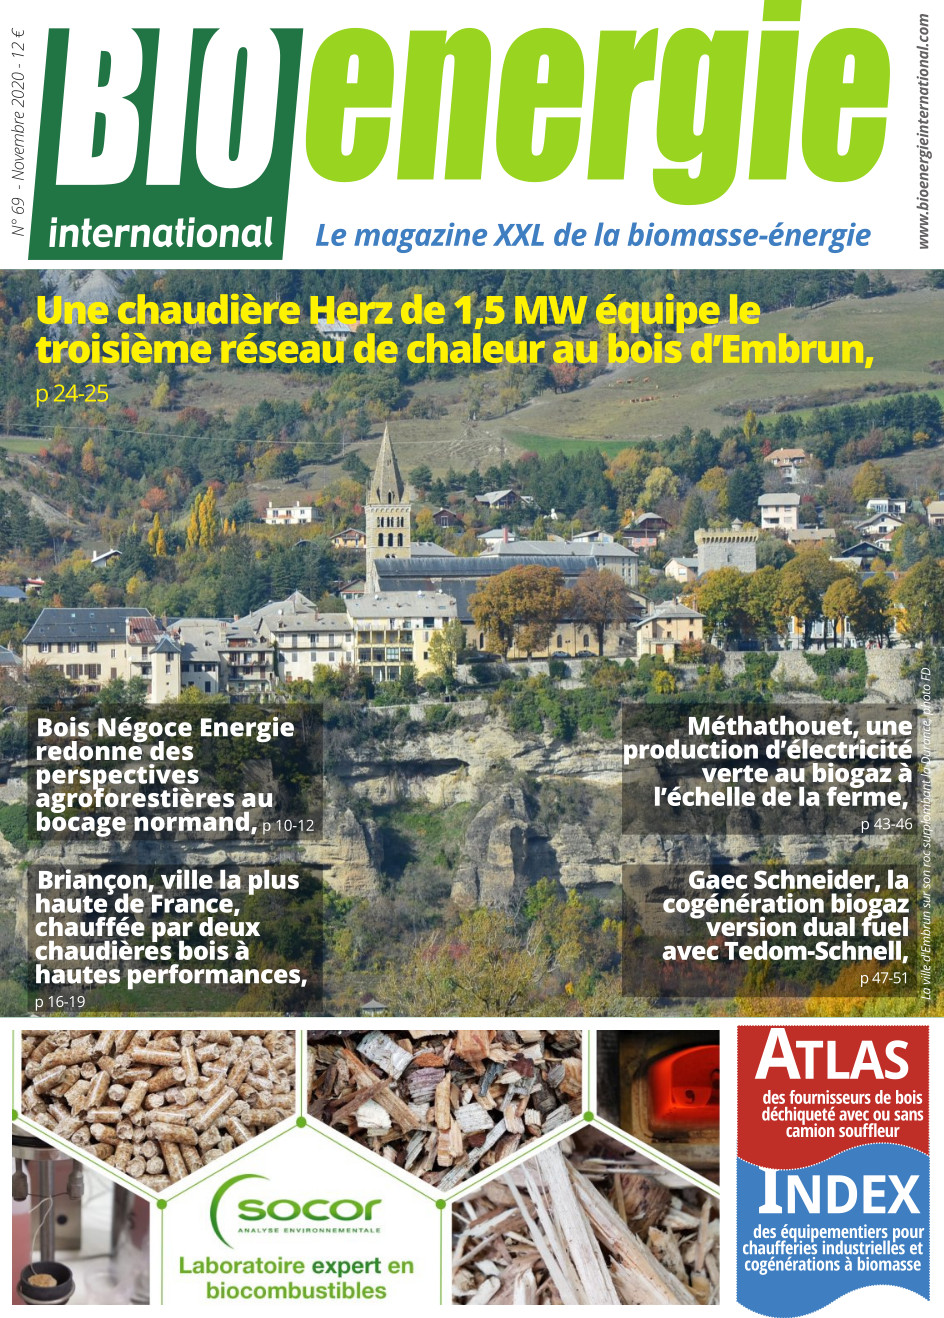 Bioénergie International n°69 – novembre 2020